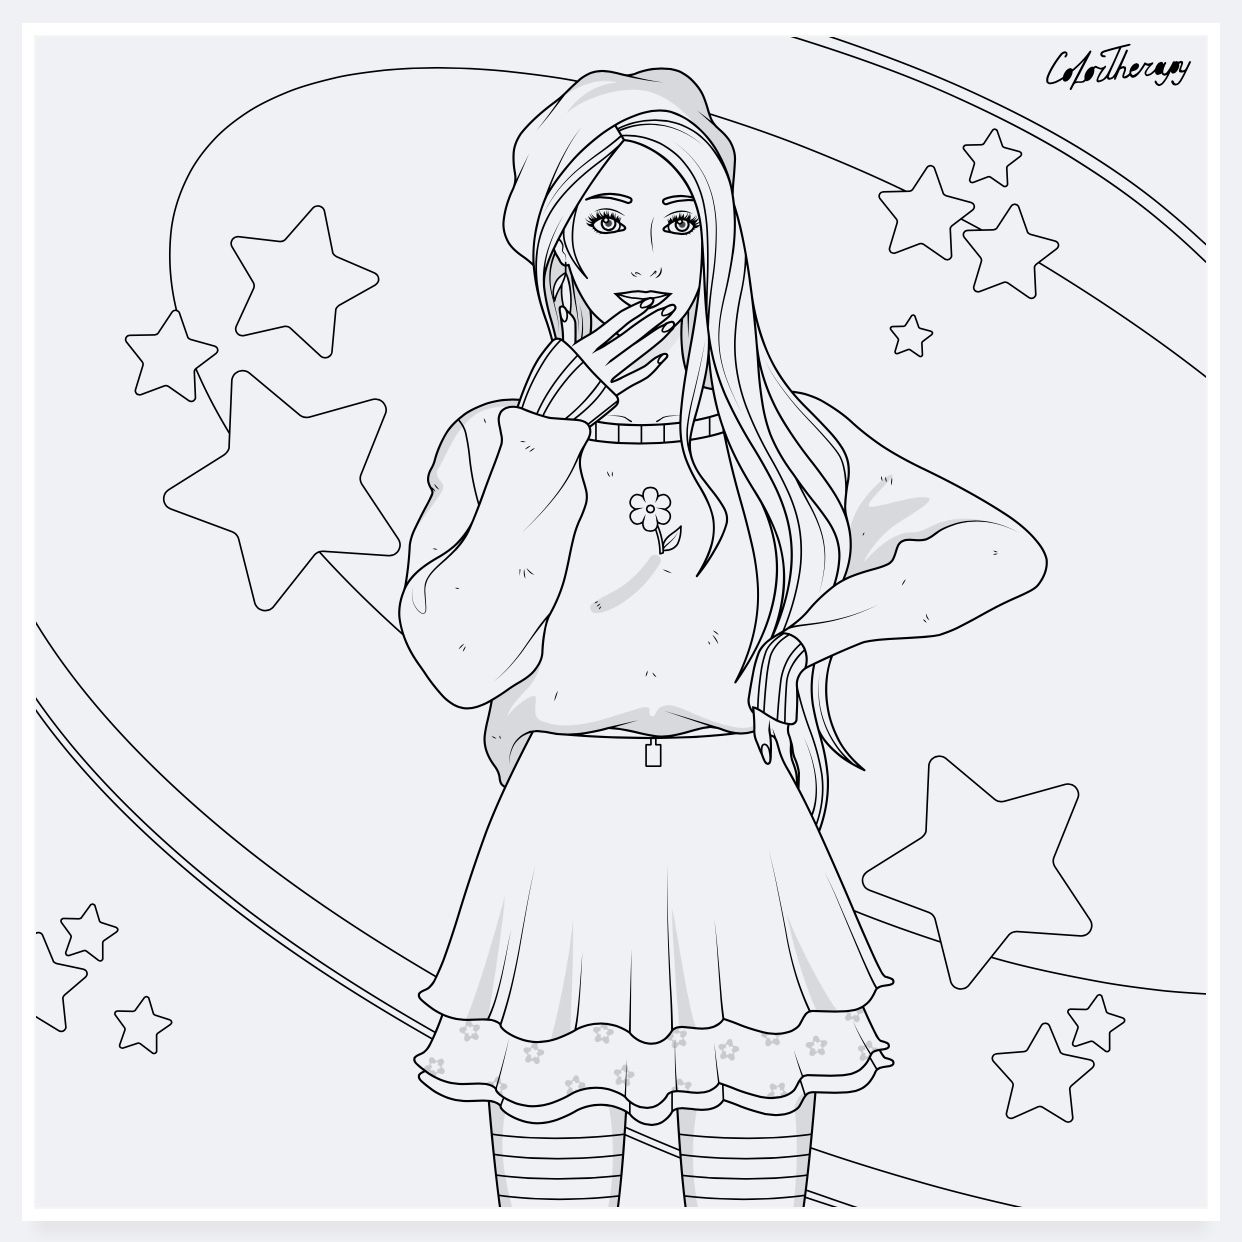 Colortherapy Cute Coloring Pages Girly Art Barbie Coloring